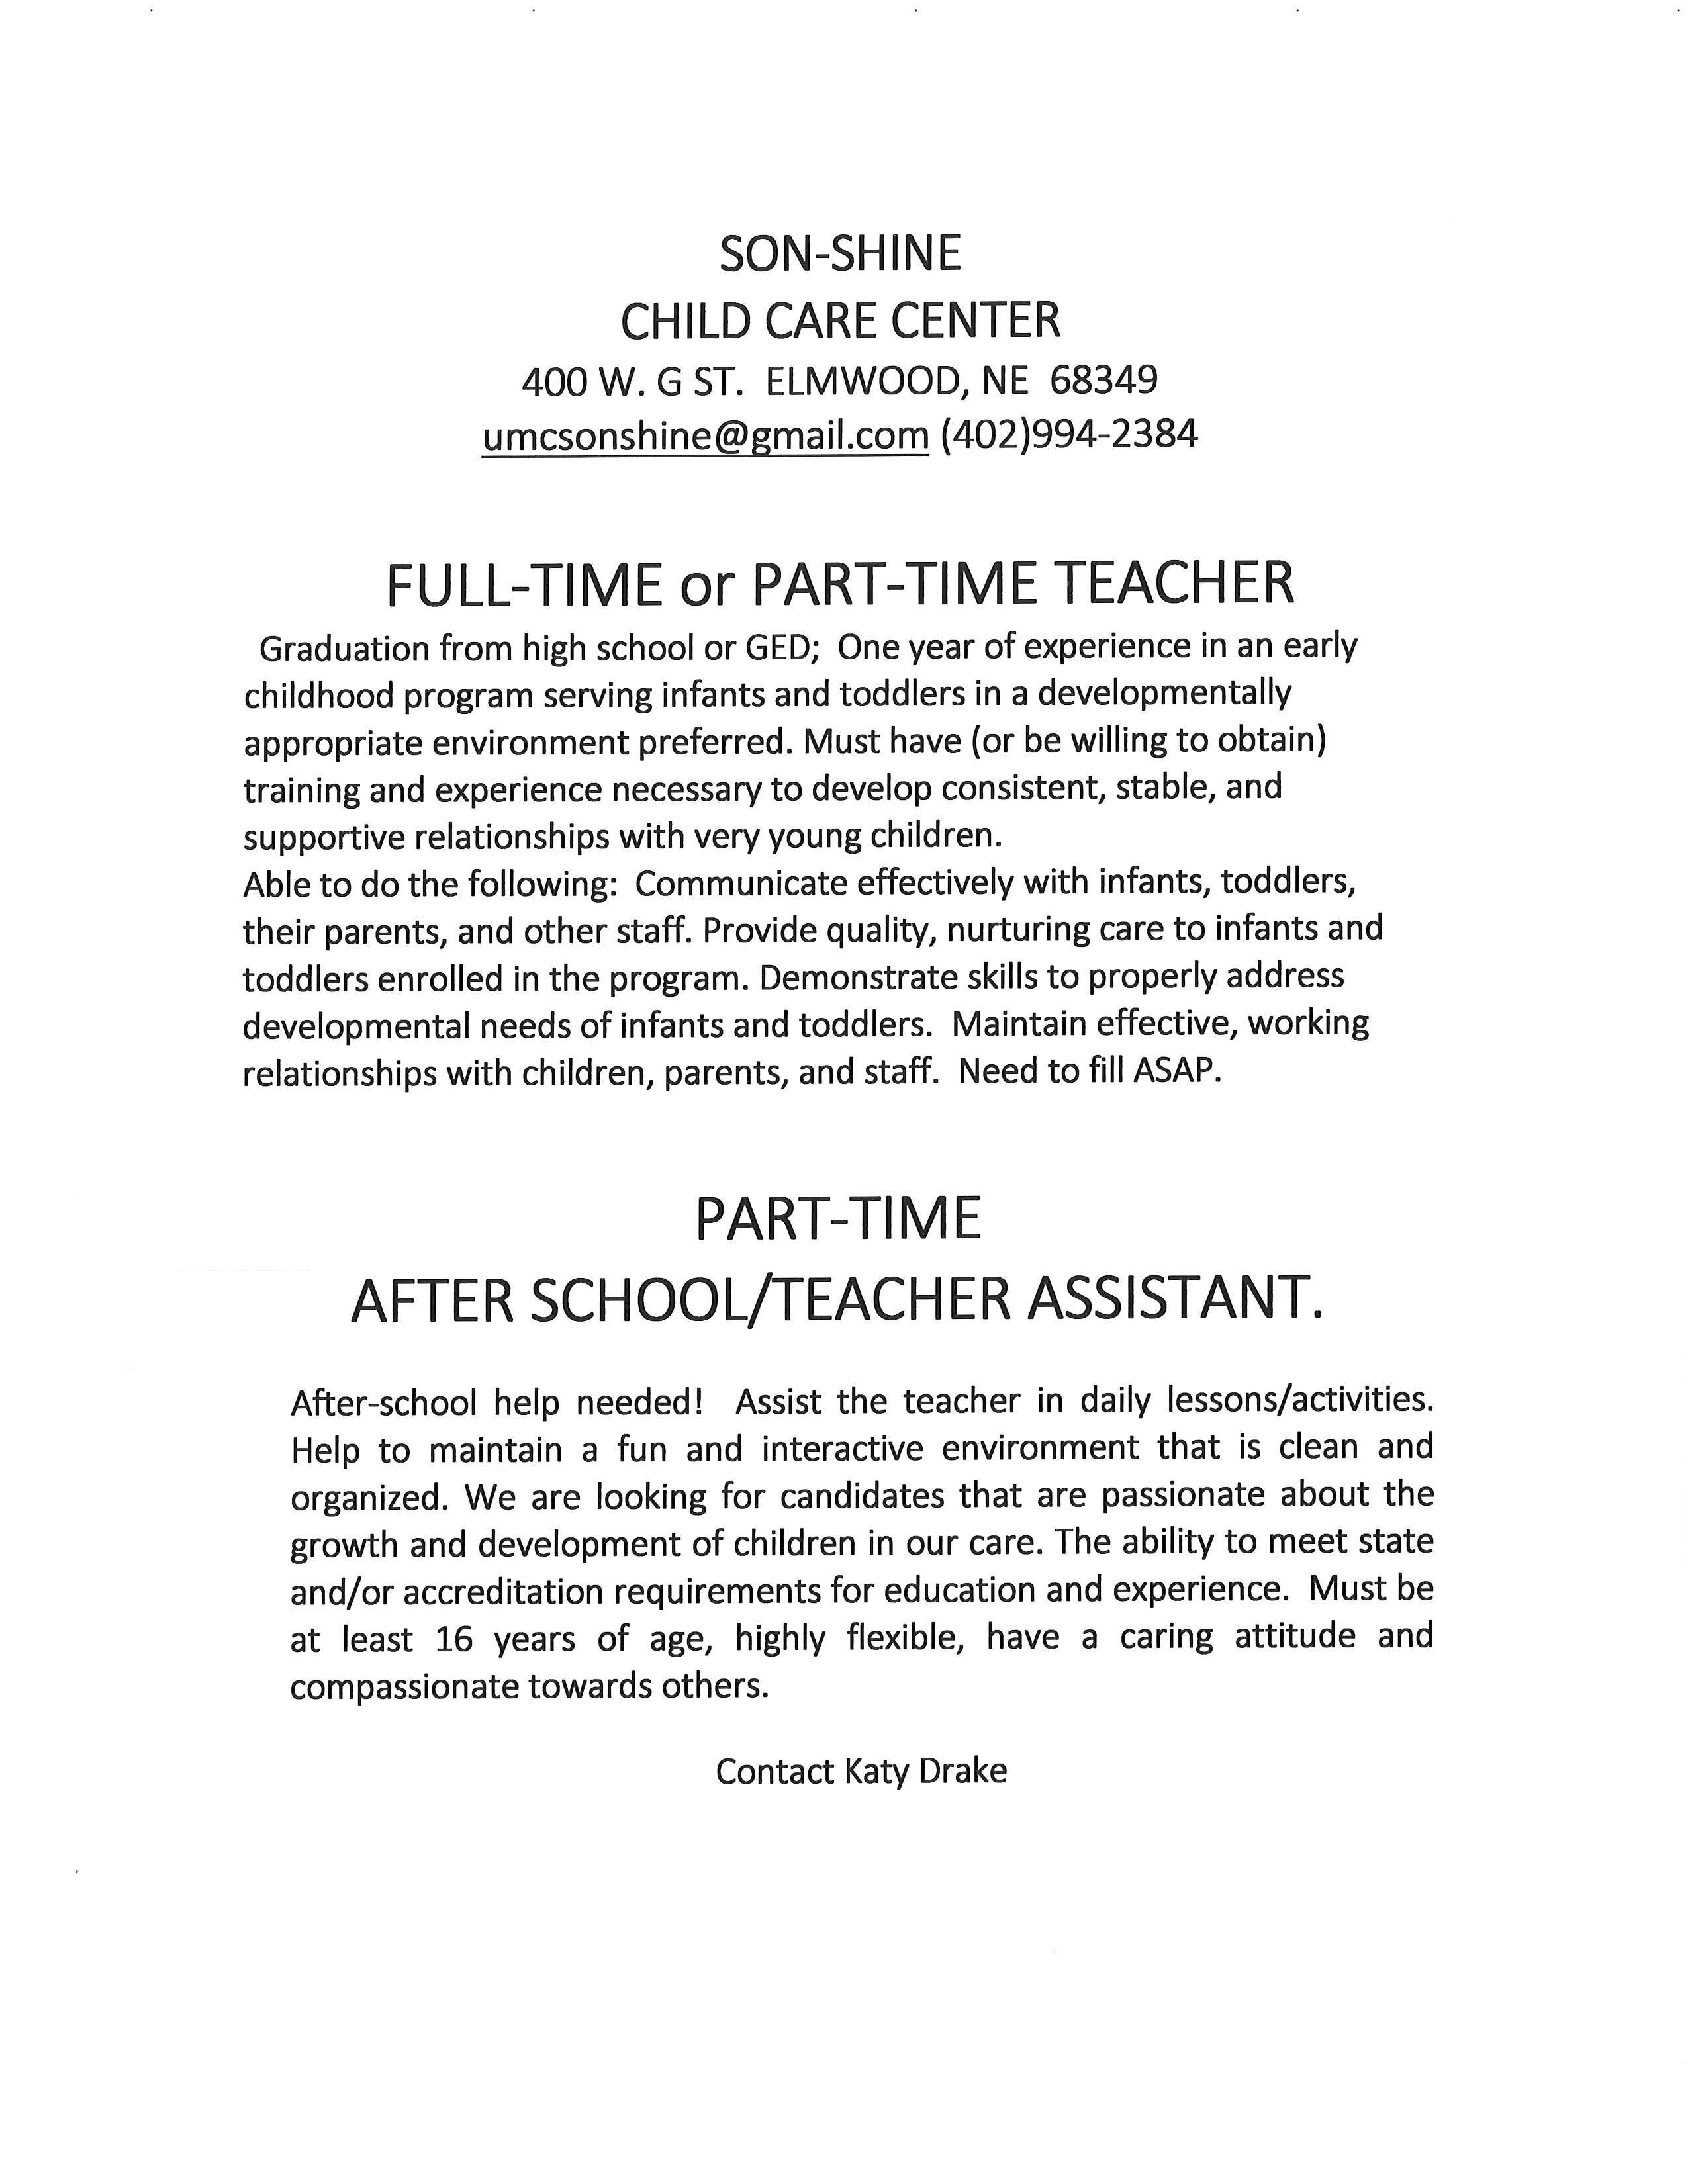 Jobs at Day care